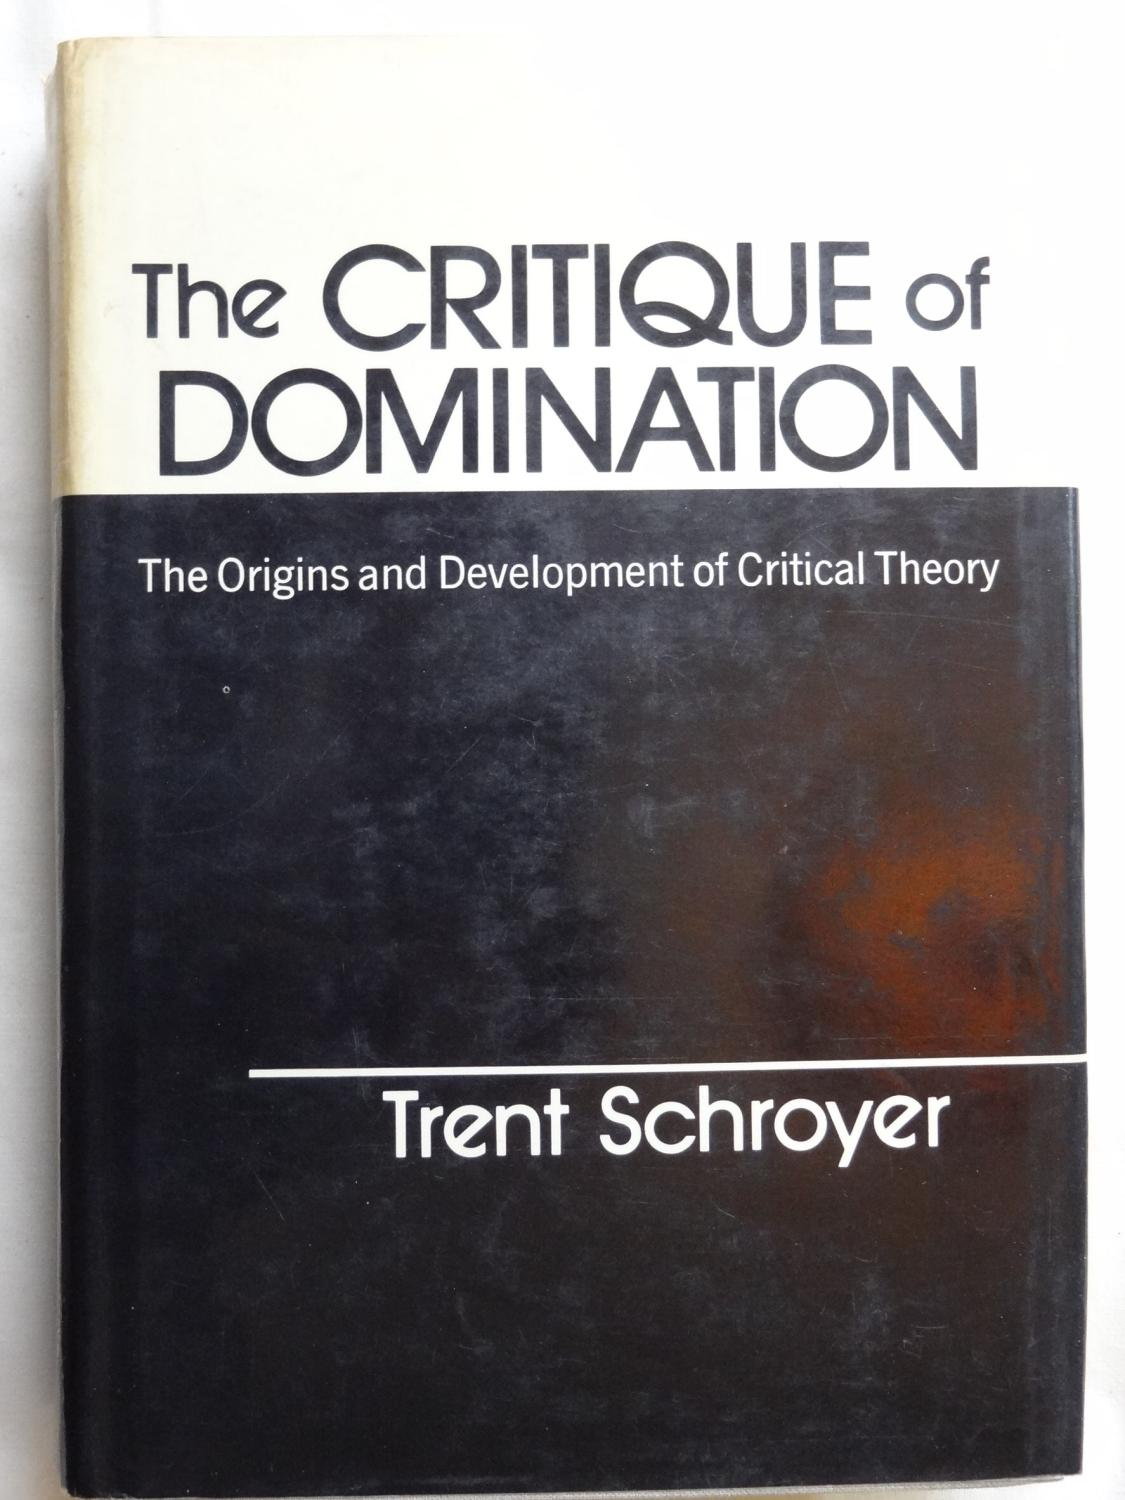 Maybe, were Critique of domination can help